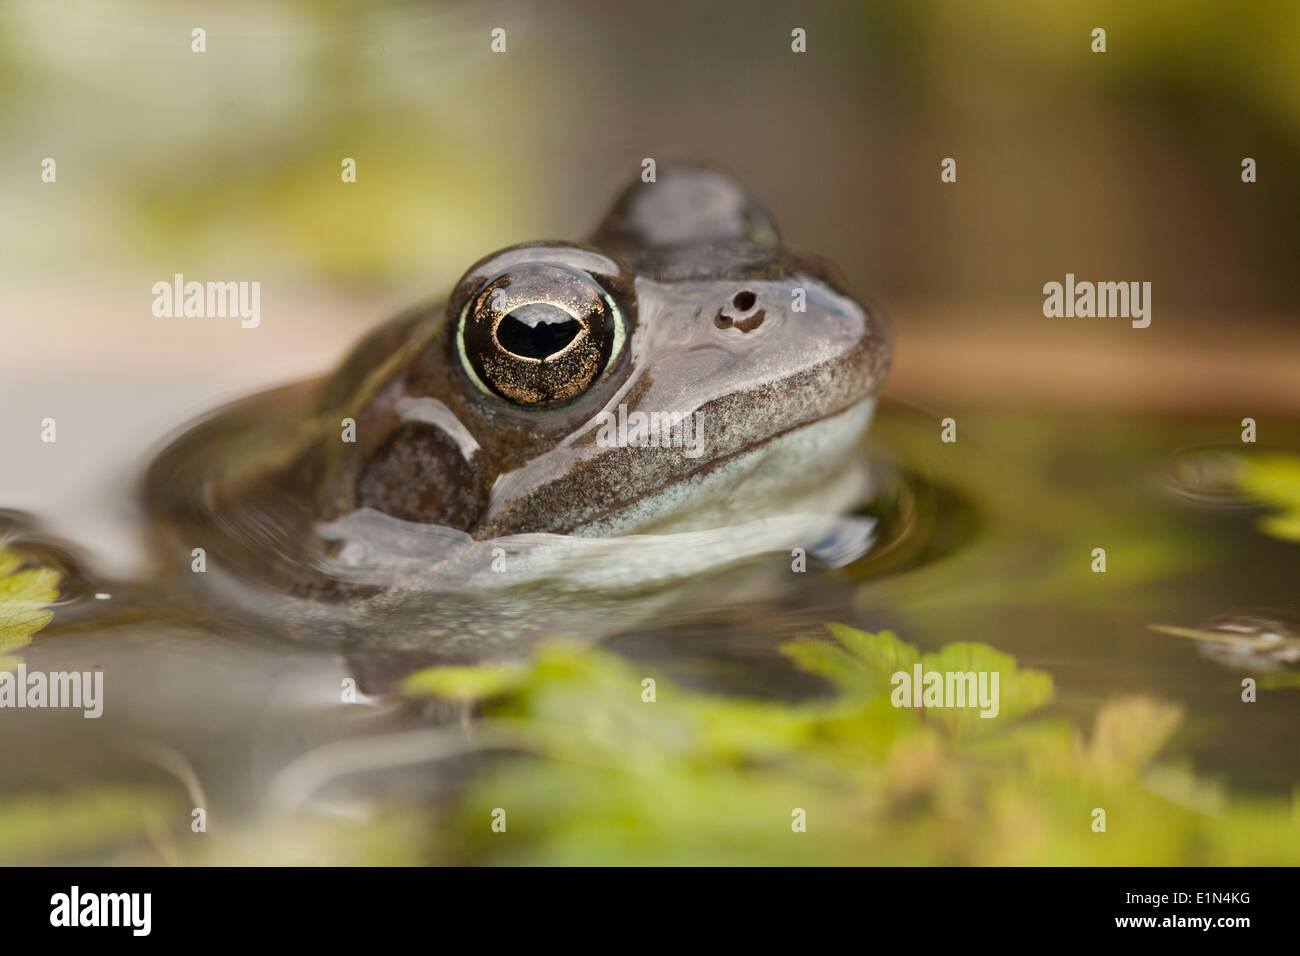 Common Frogs, (Rana temporaria) during spawning season, UK. - Stock Image